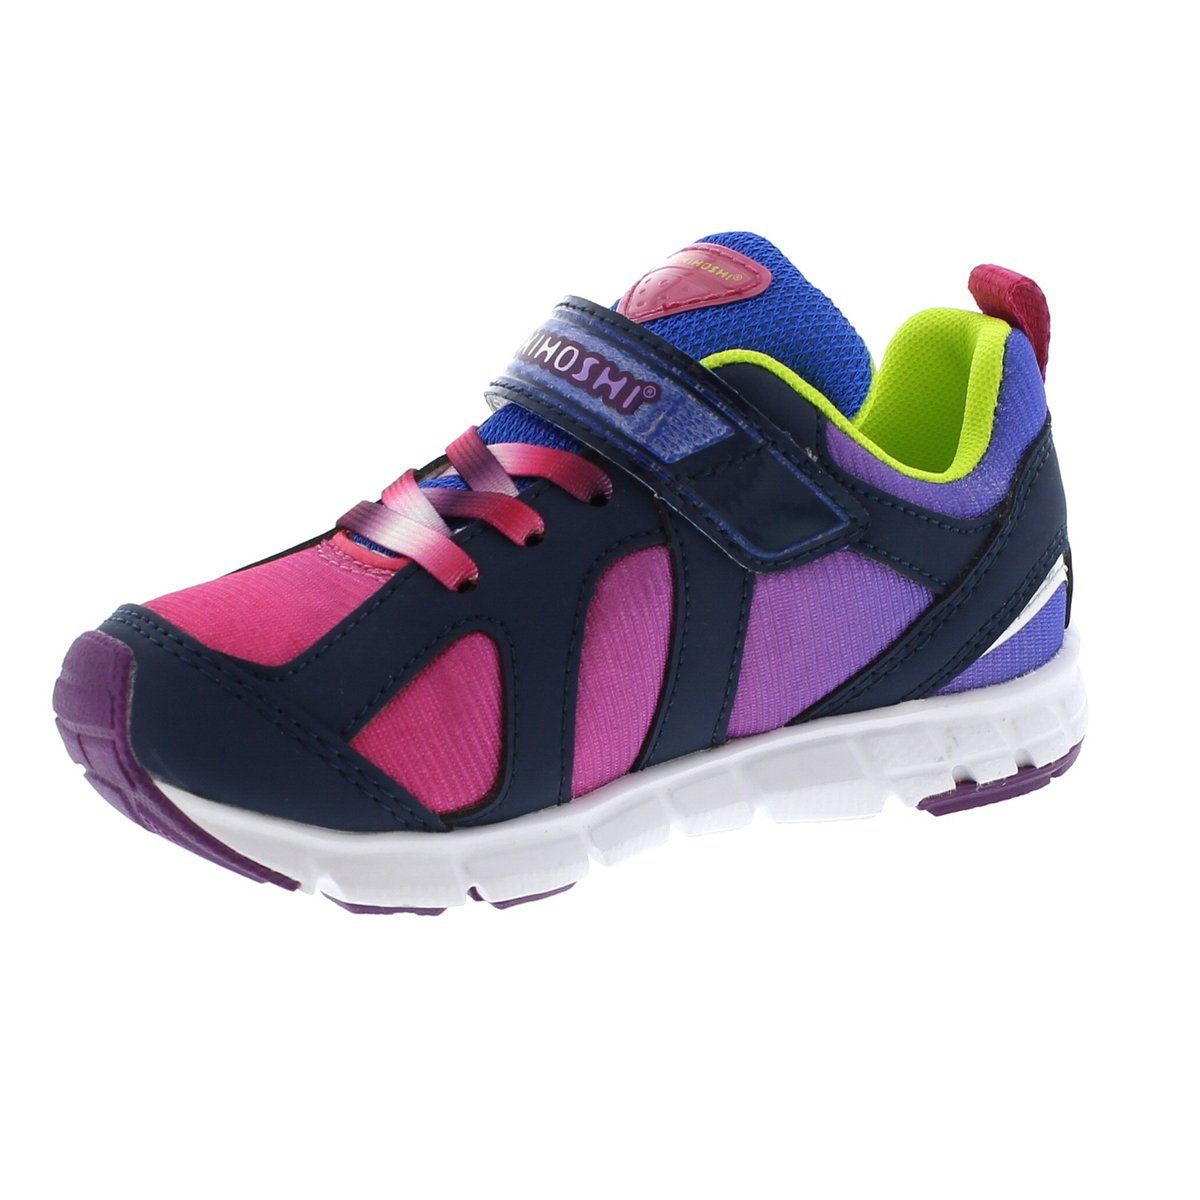 Child Tsukihoshi Rainbow Sneaker in Navy/Fuchsia from the front view